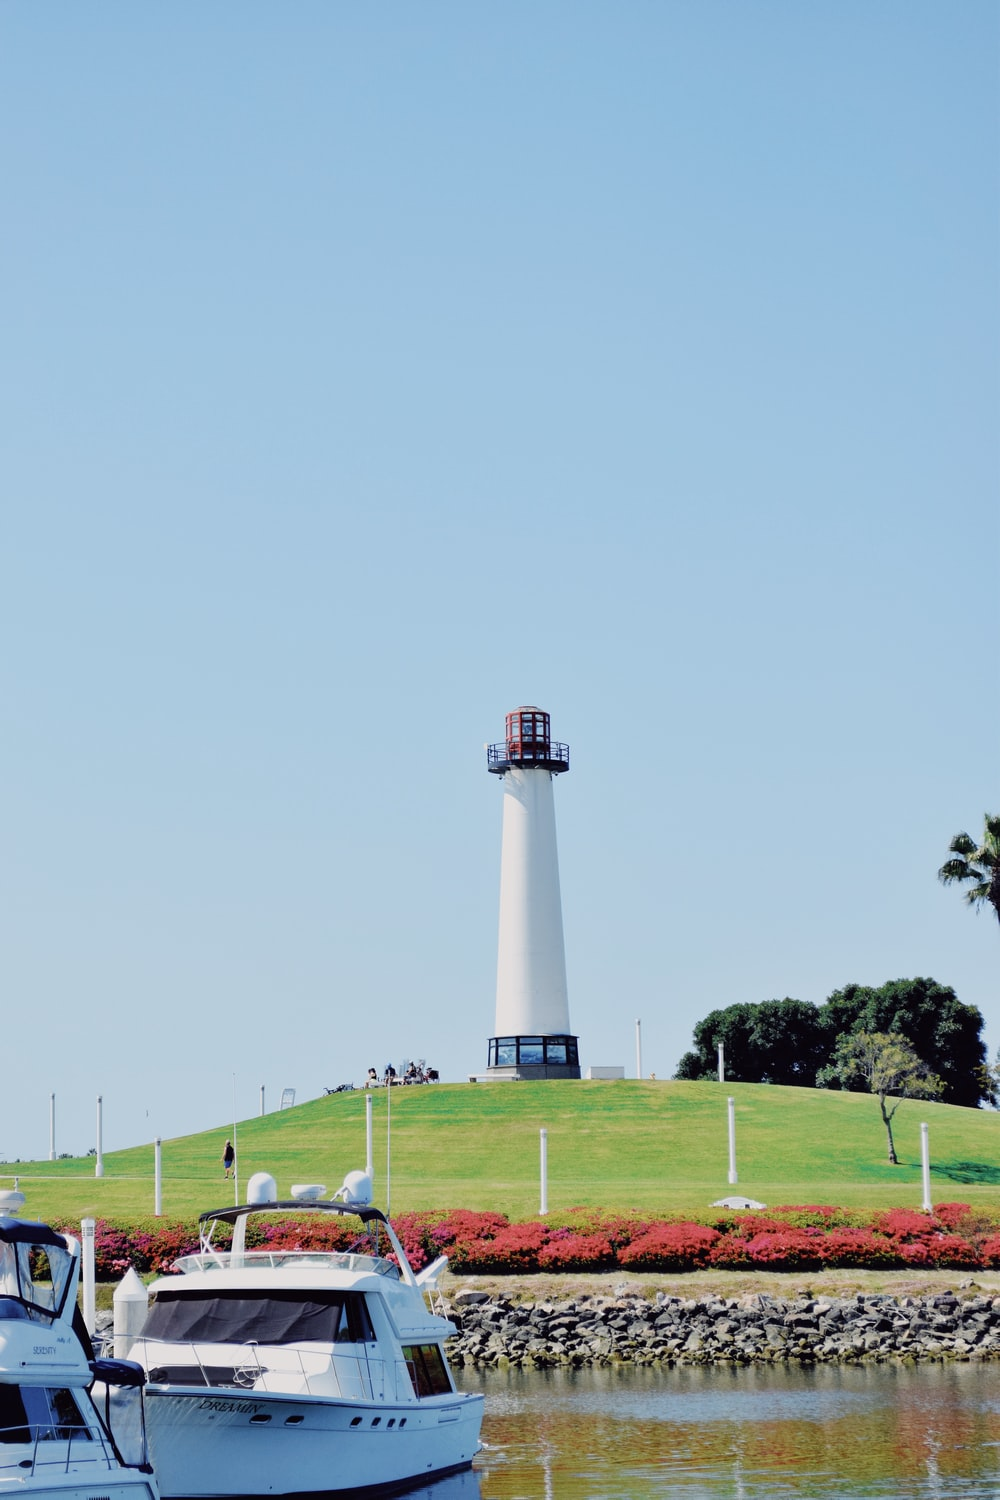 white and black lighthouse on green grass field under blue sky during daytime